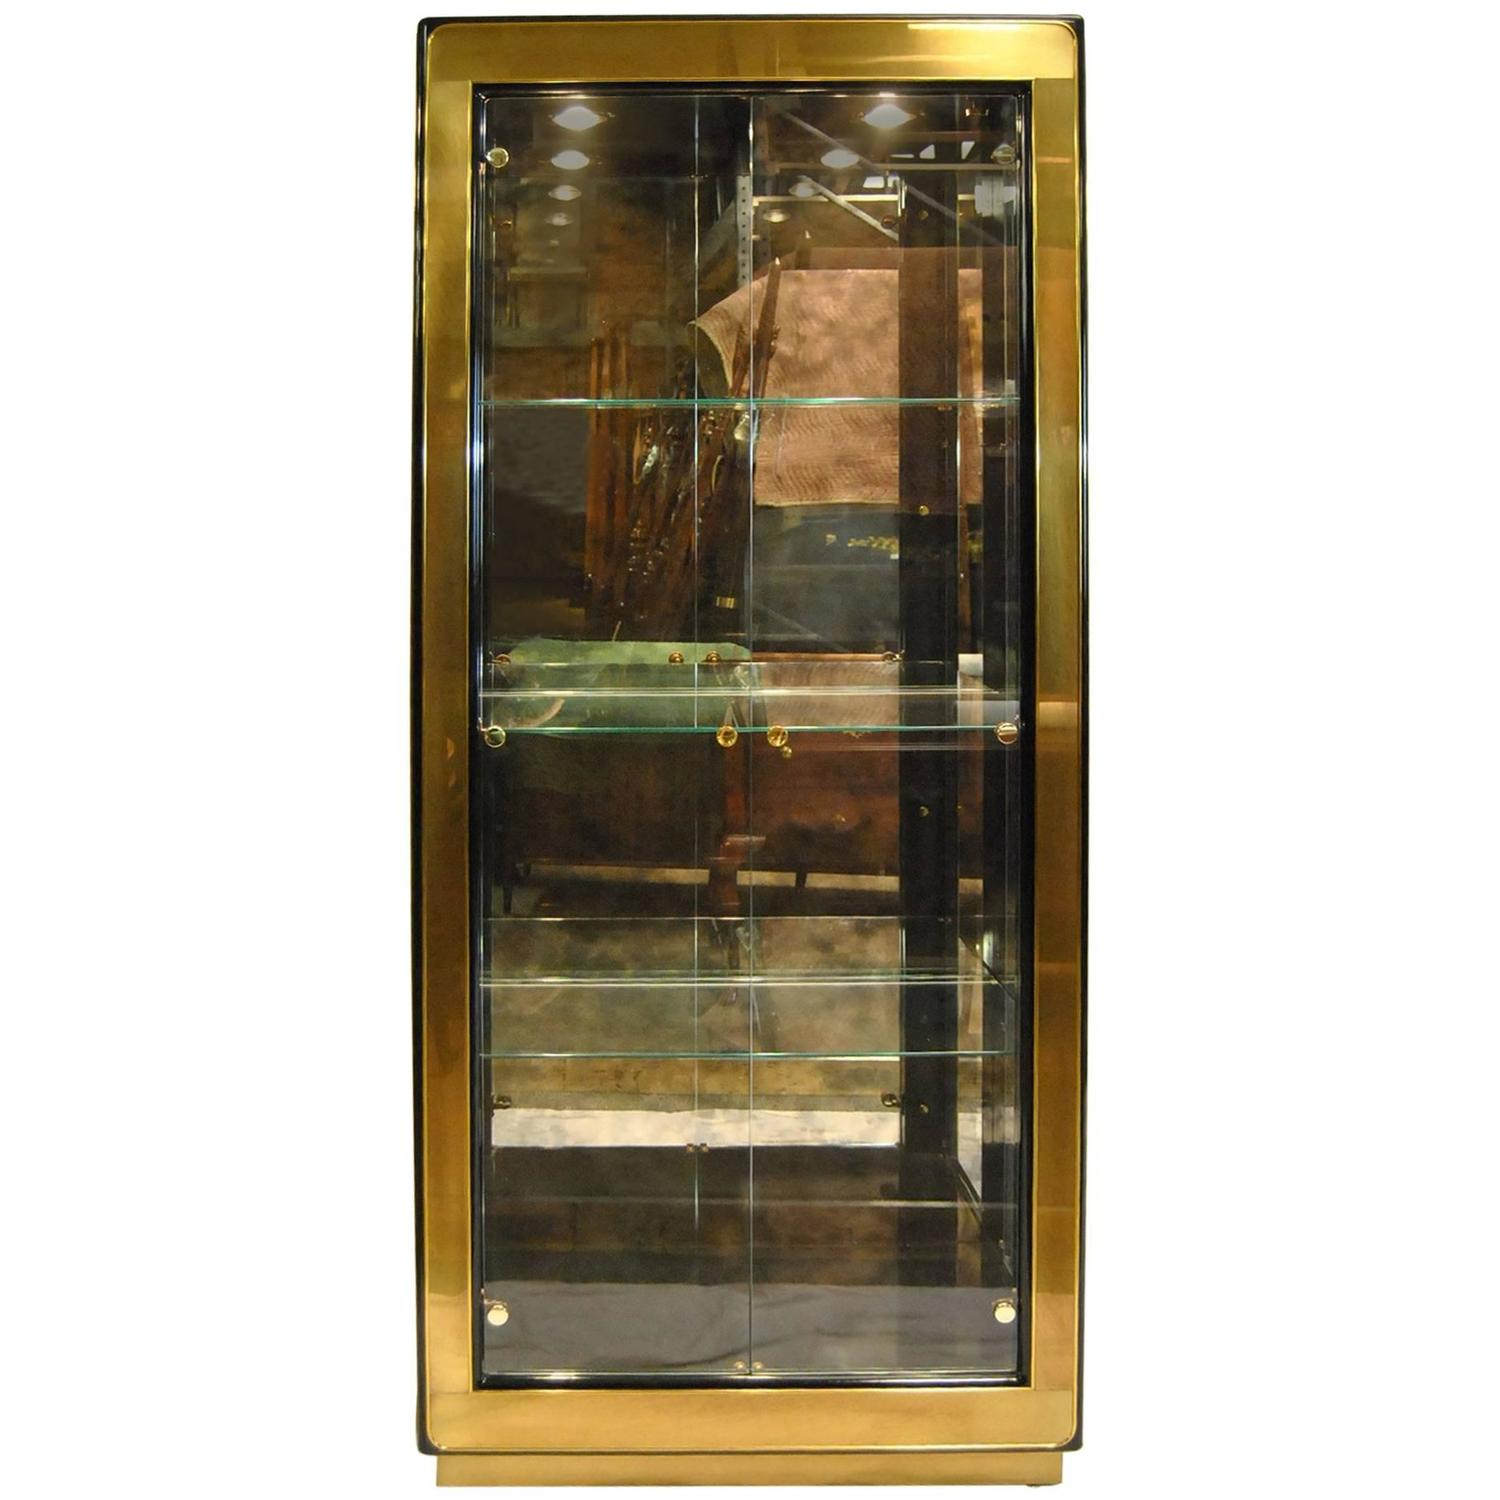 Modern black lacquer and glass curio display cabinet by mastercraft furniture for sale at 1stdibs - Elegant contemporary curio cabinets furniture ...